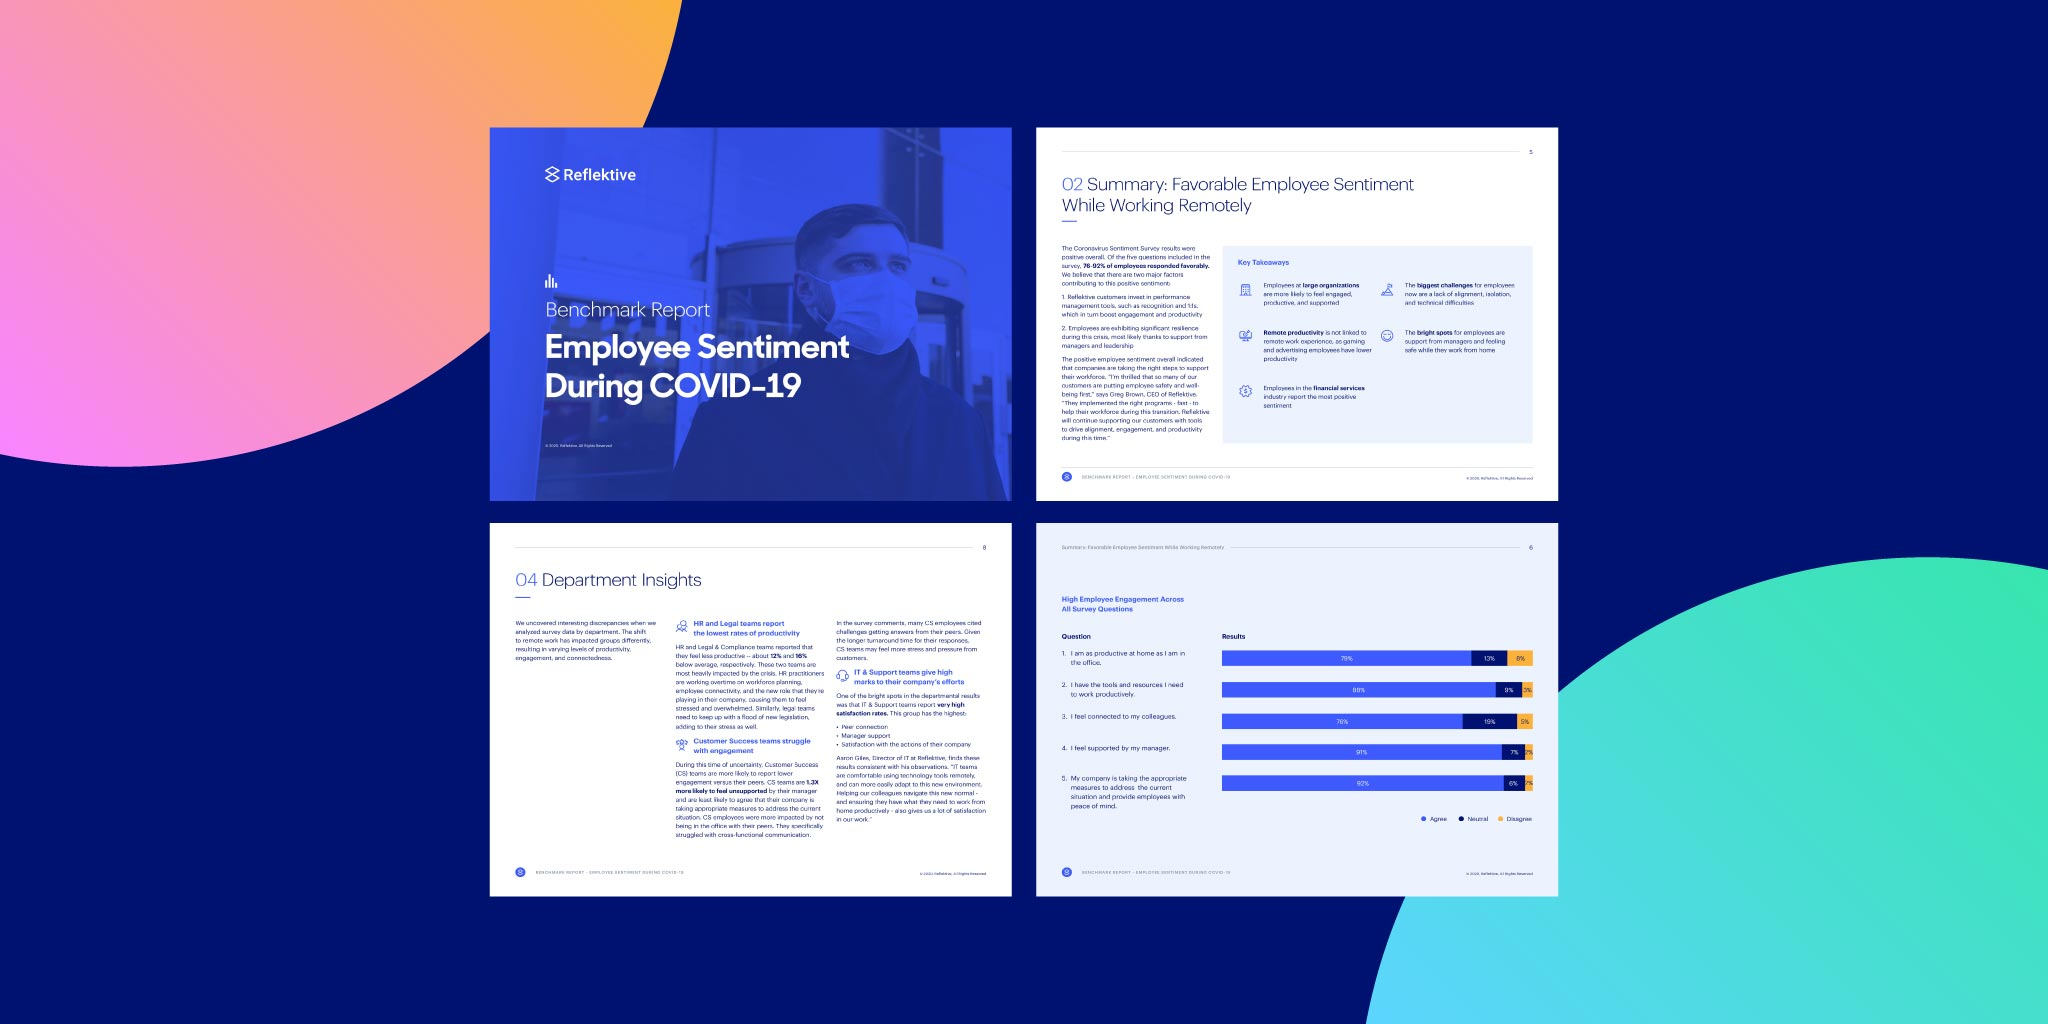 Benchmark Report: Employee Sentiment During Covid - 19